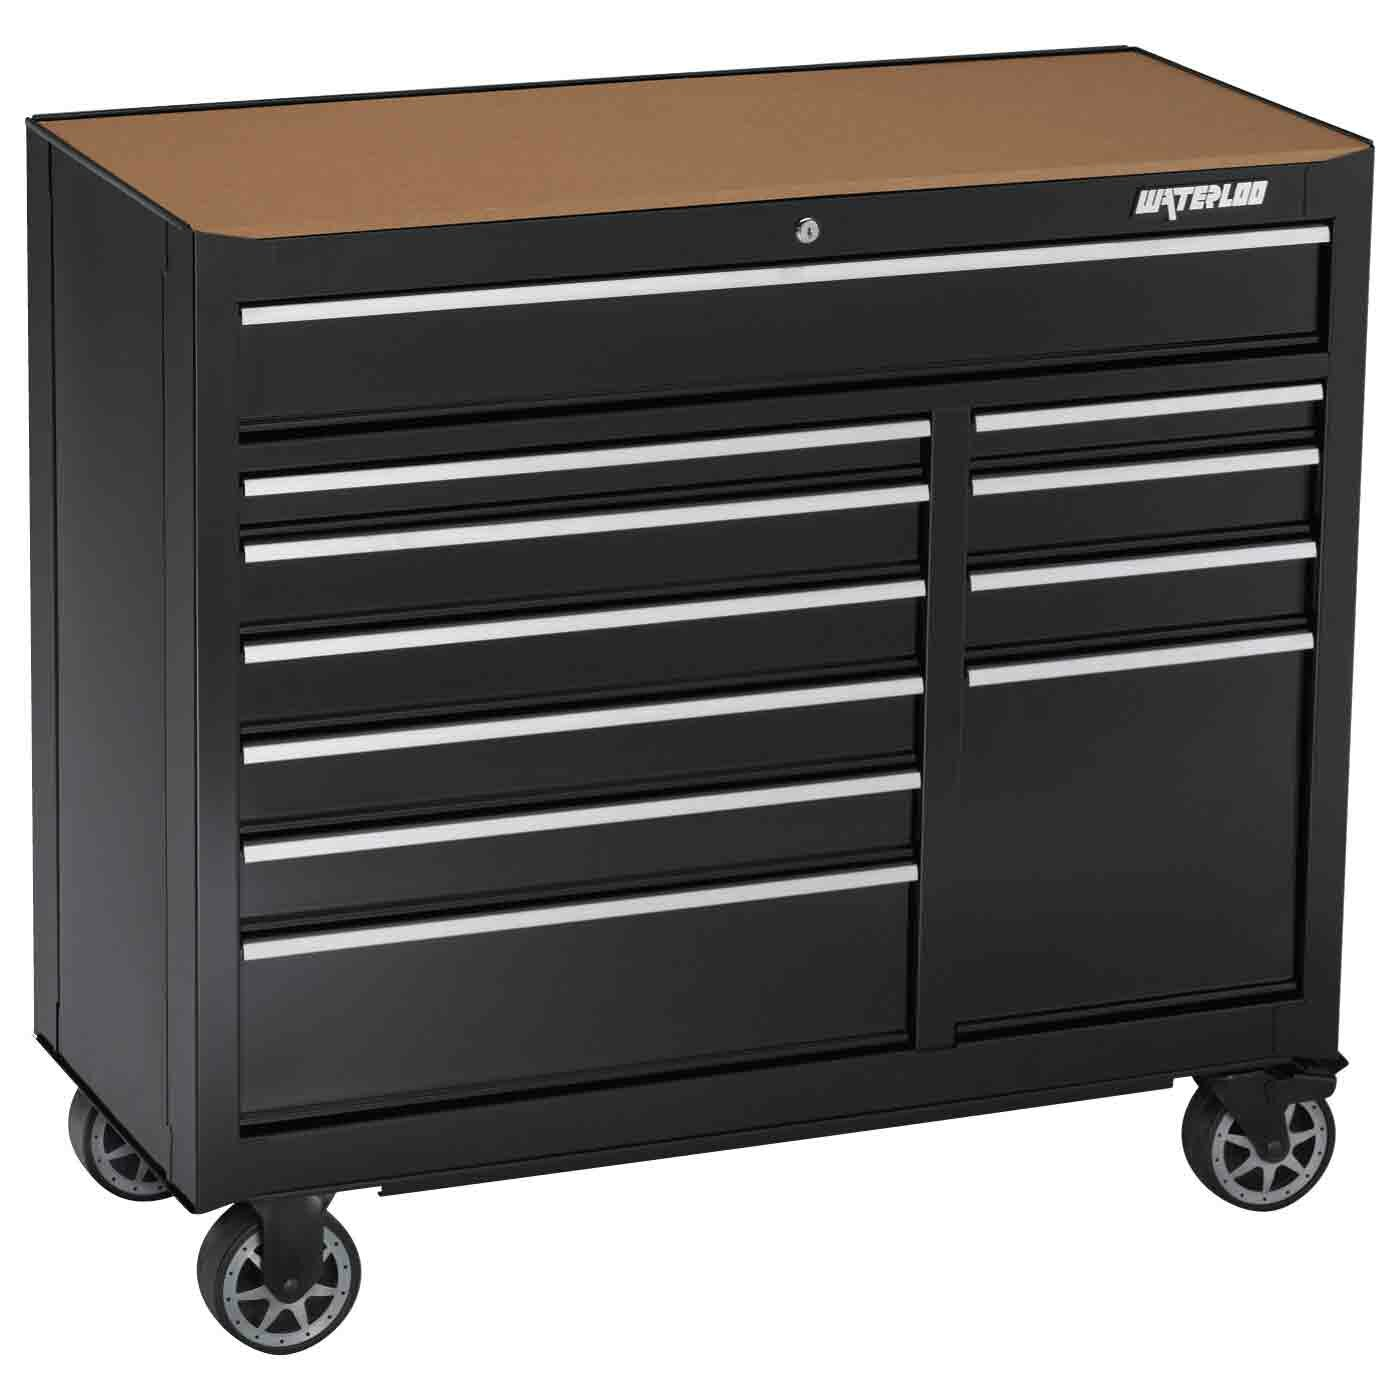 drawer tca waterloo garage left side cabinet toolbox roller products img tool hdseries